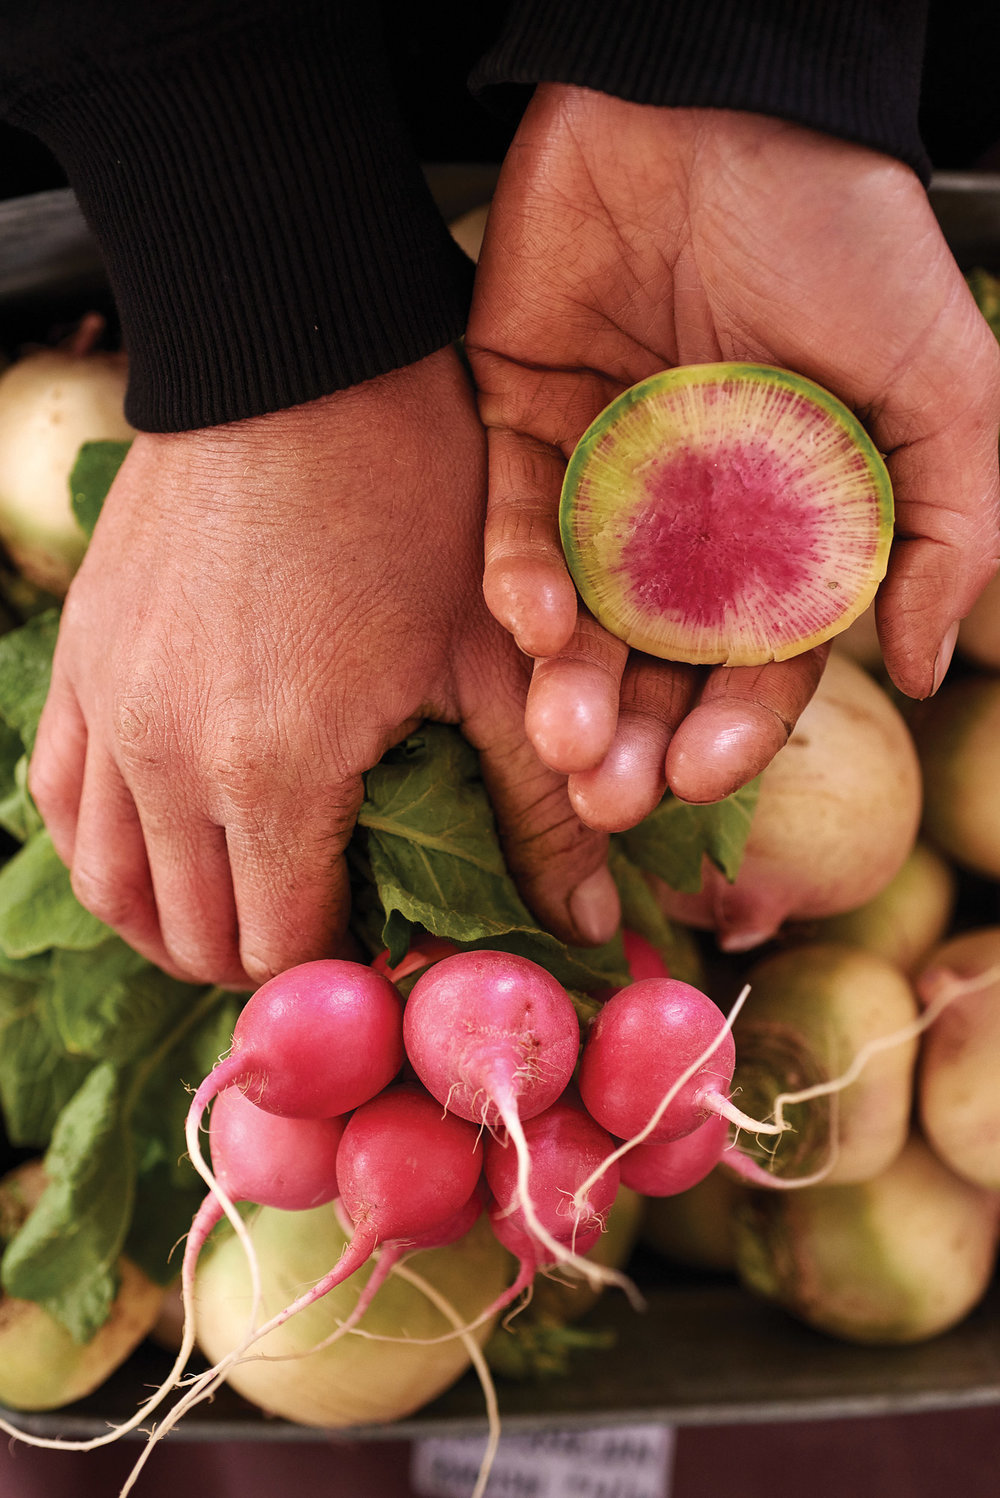 Emma Dosch, Weavers Way, watermelon radish and pink radish